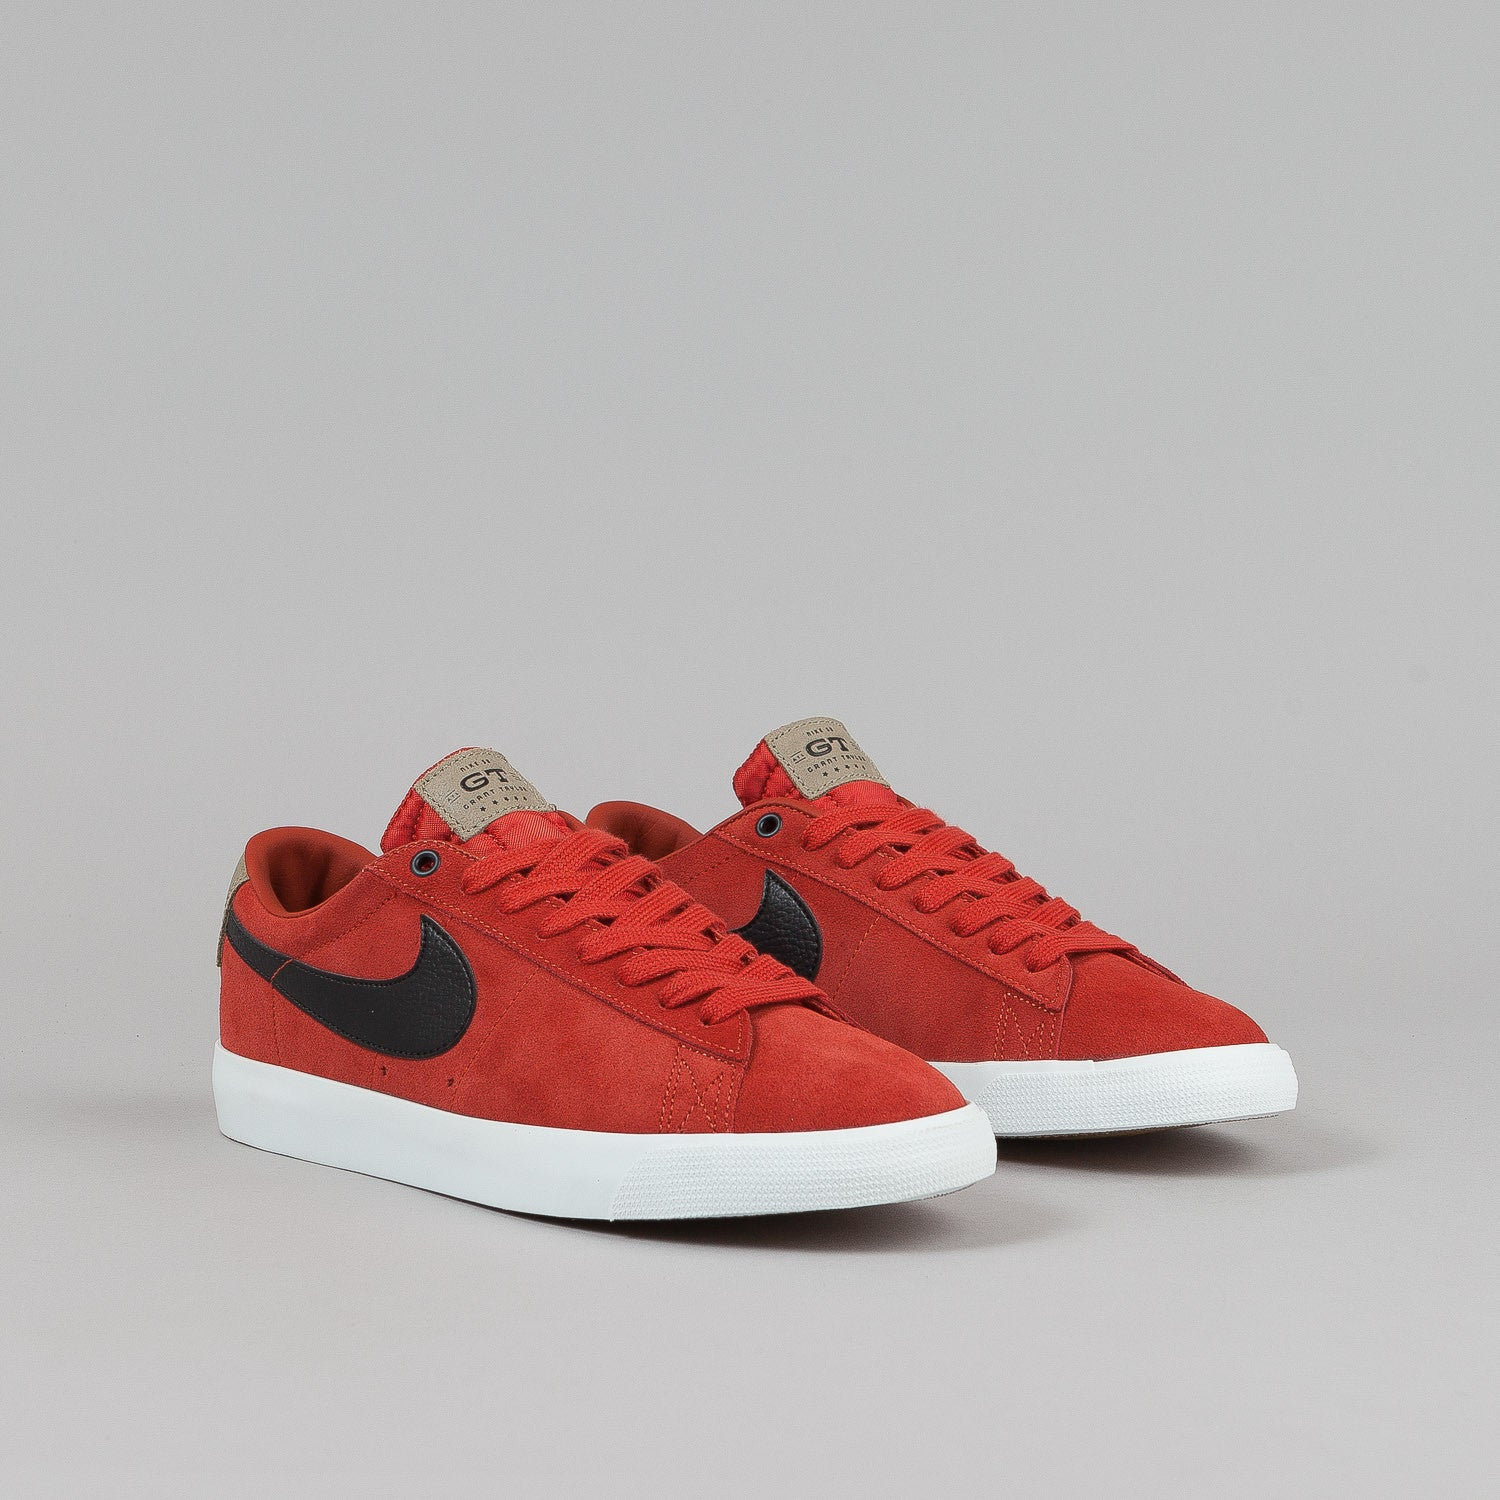 Nike SB Blazer Low GT Shoes QS - Cinnabar / Black / Bamboo